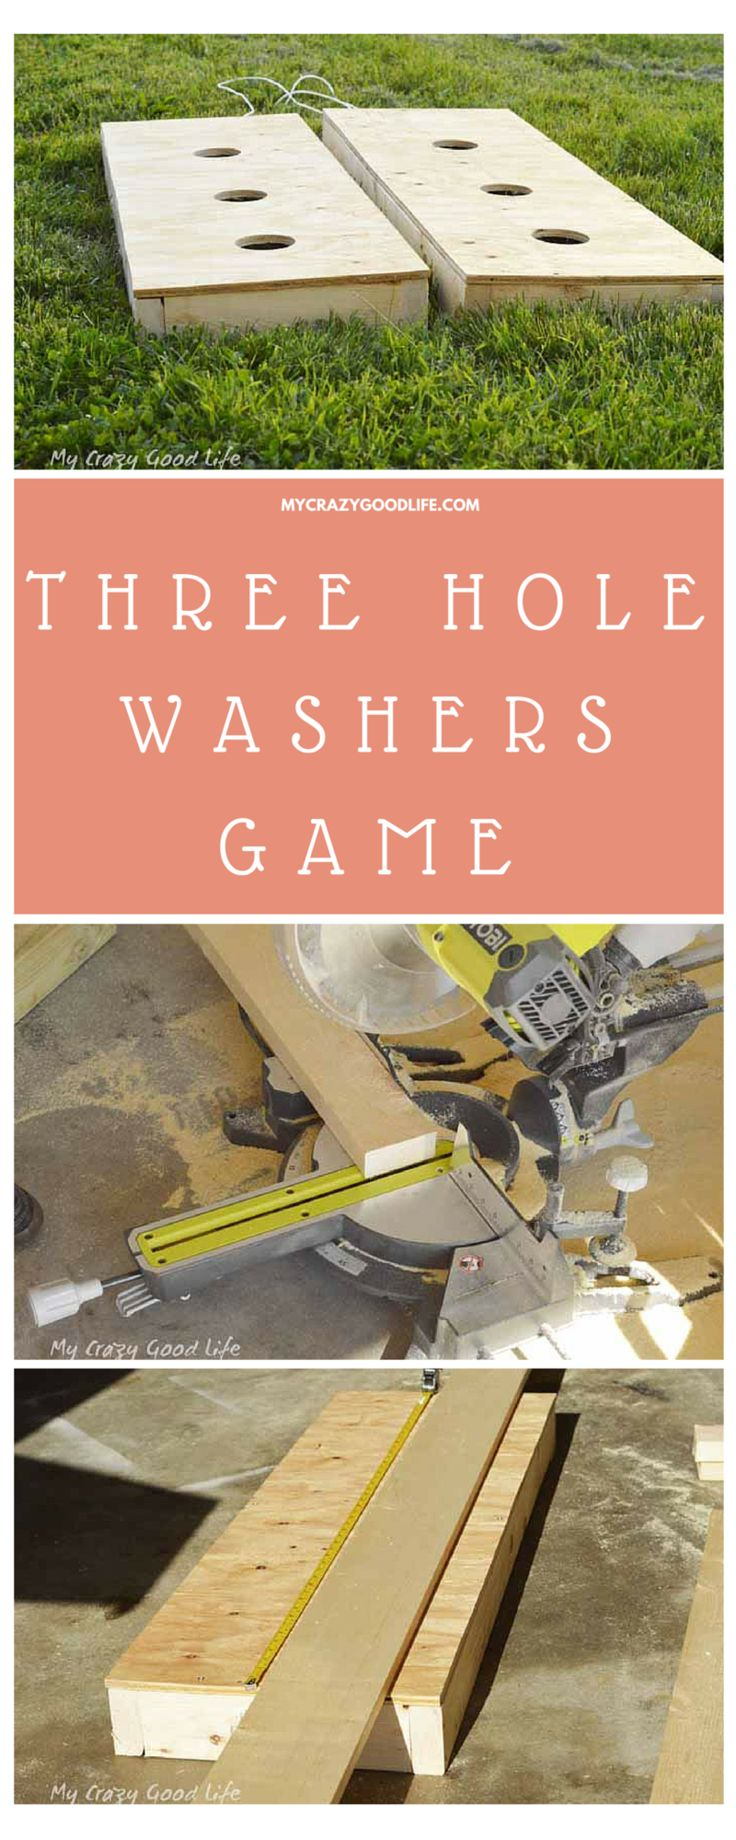 This awesome DIY Lawn Game is super easy to make and will last for years to come! Three Hole Washers Game is much cheaper to build than it is to buy and ship! Make your own today in time for all those fun summer parties!